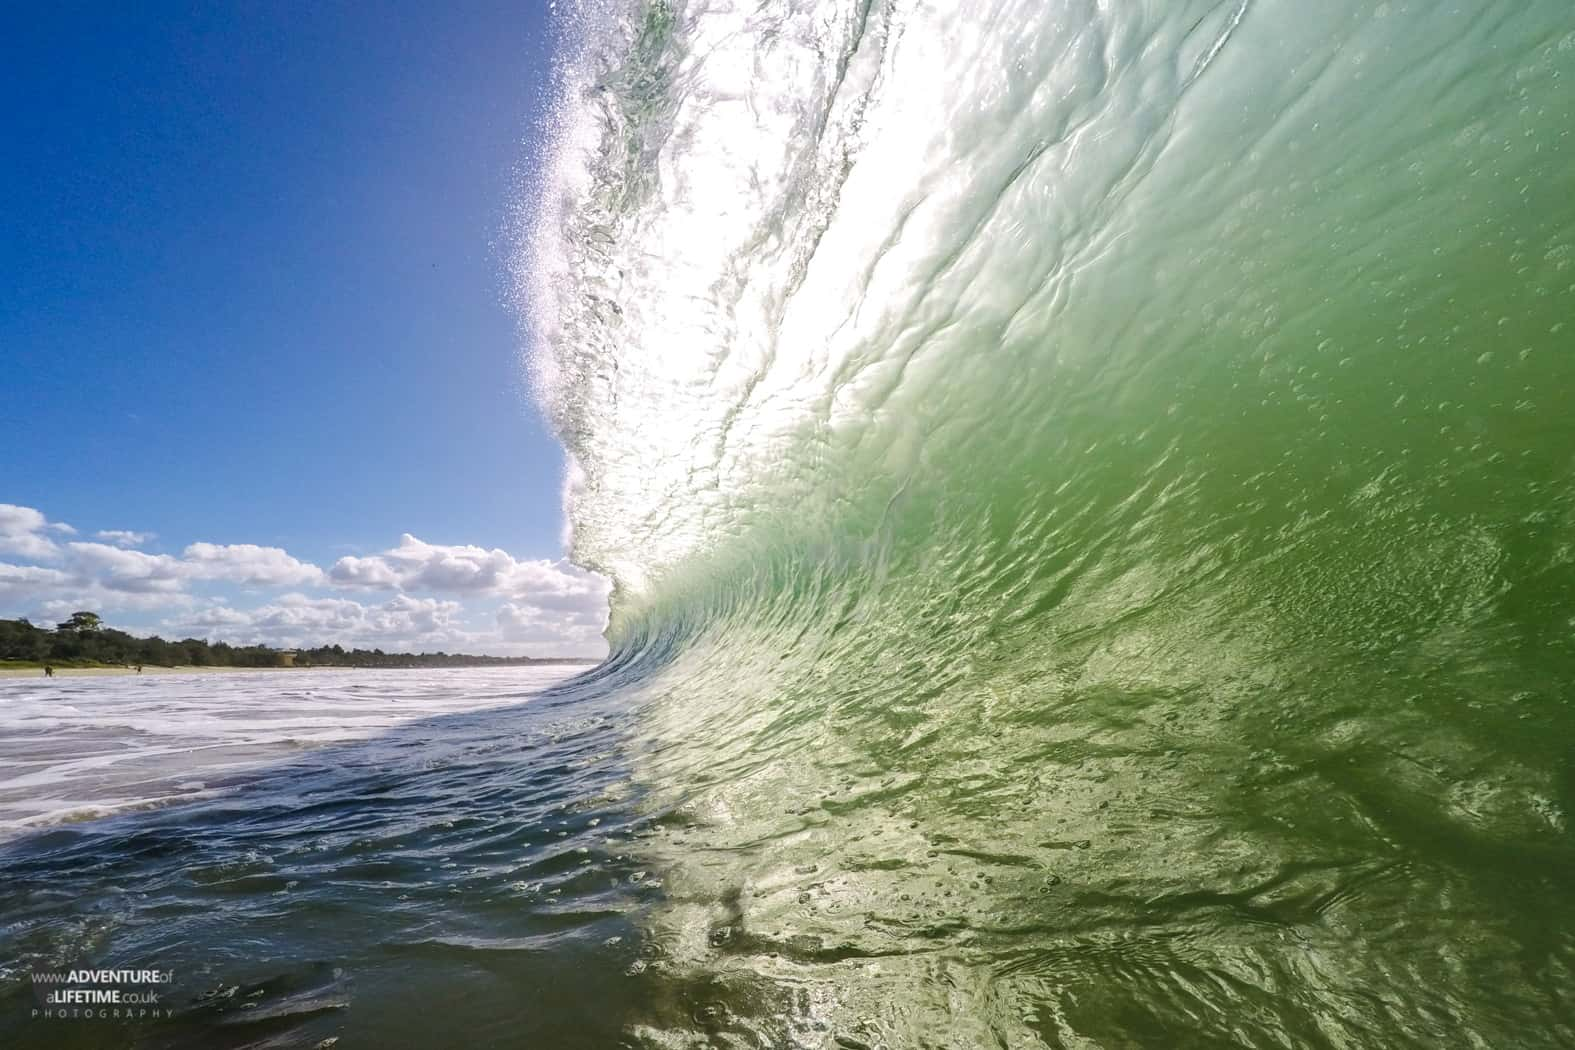 Beautiful waves on the Gold Coast